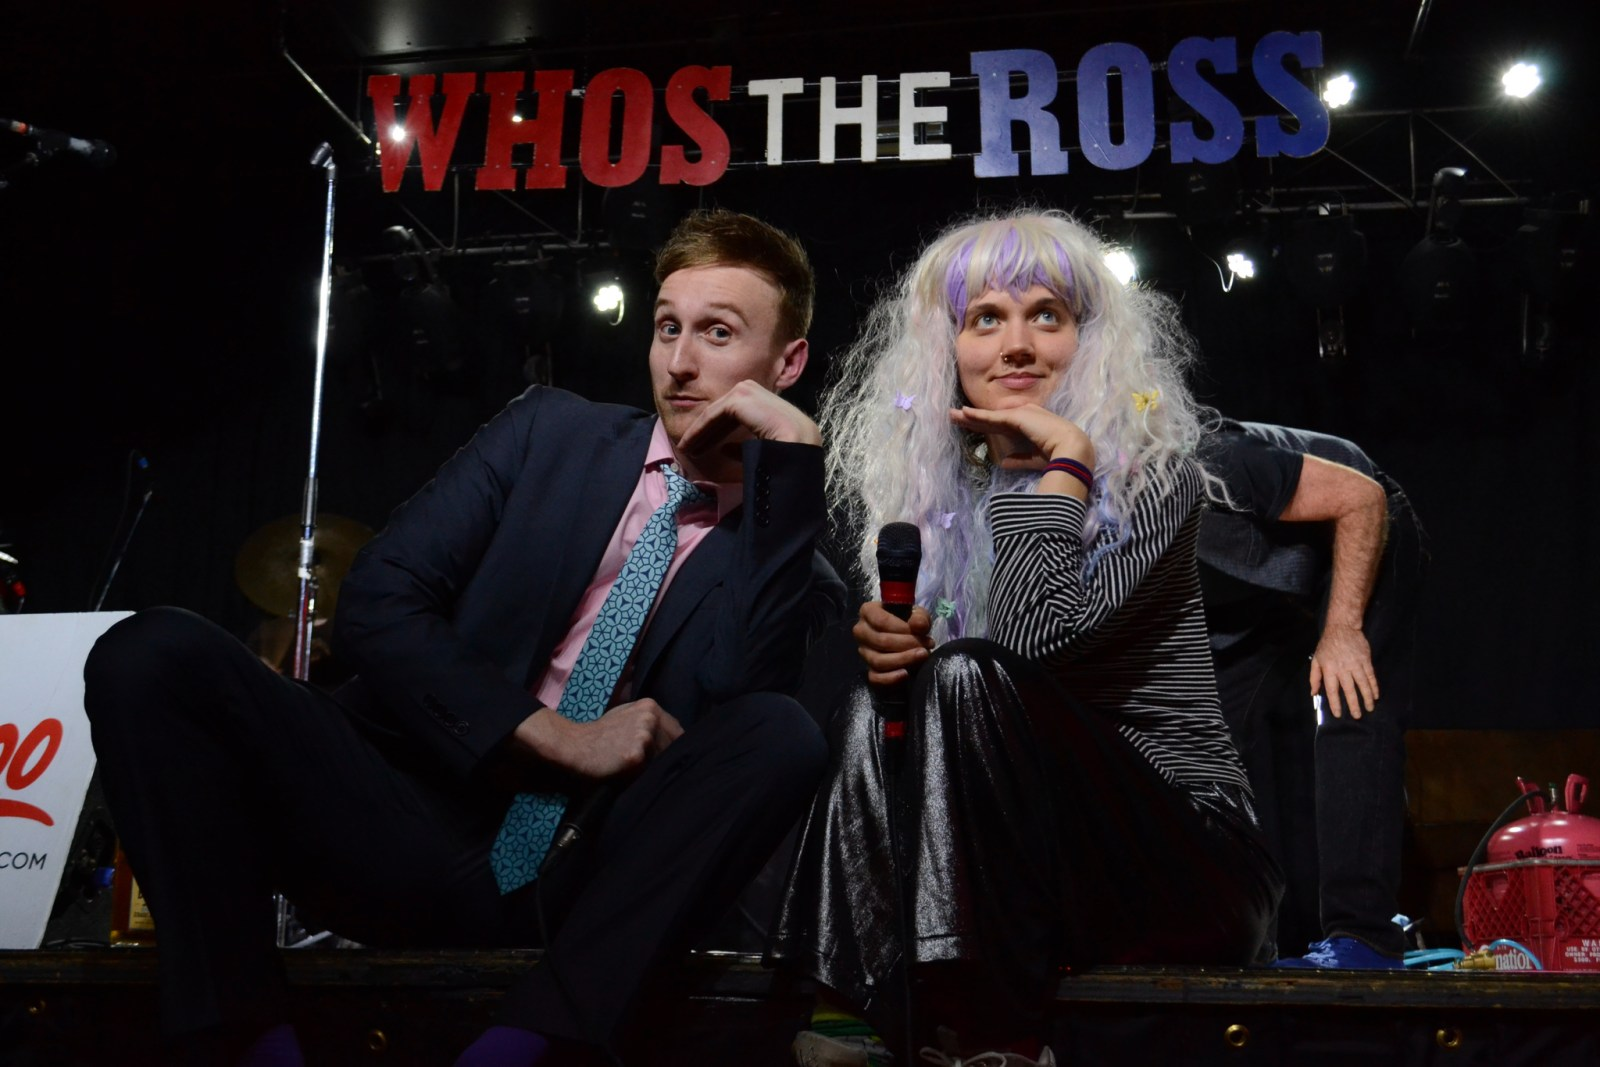 """Coco Columbia Aaron Ross """"Who's the Ross?"""" music comedy PDX Portland"""